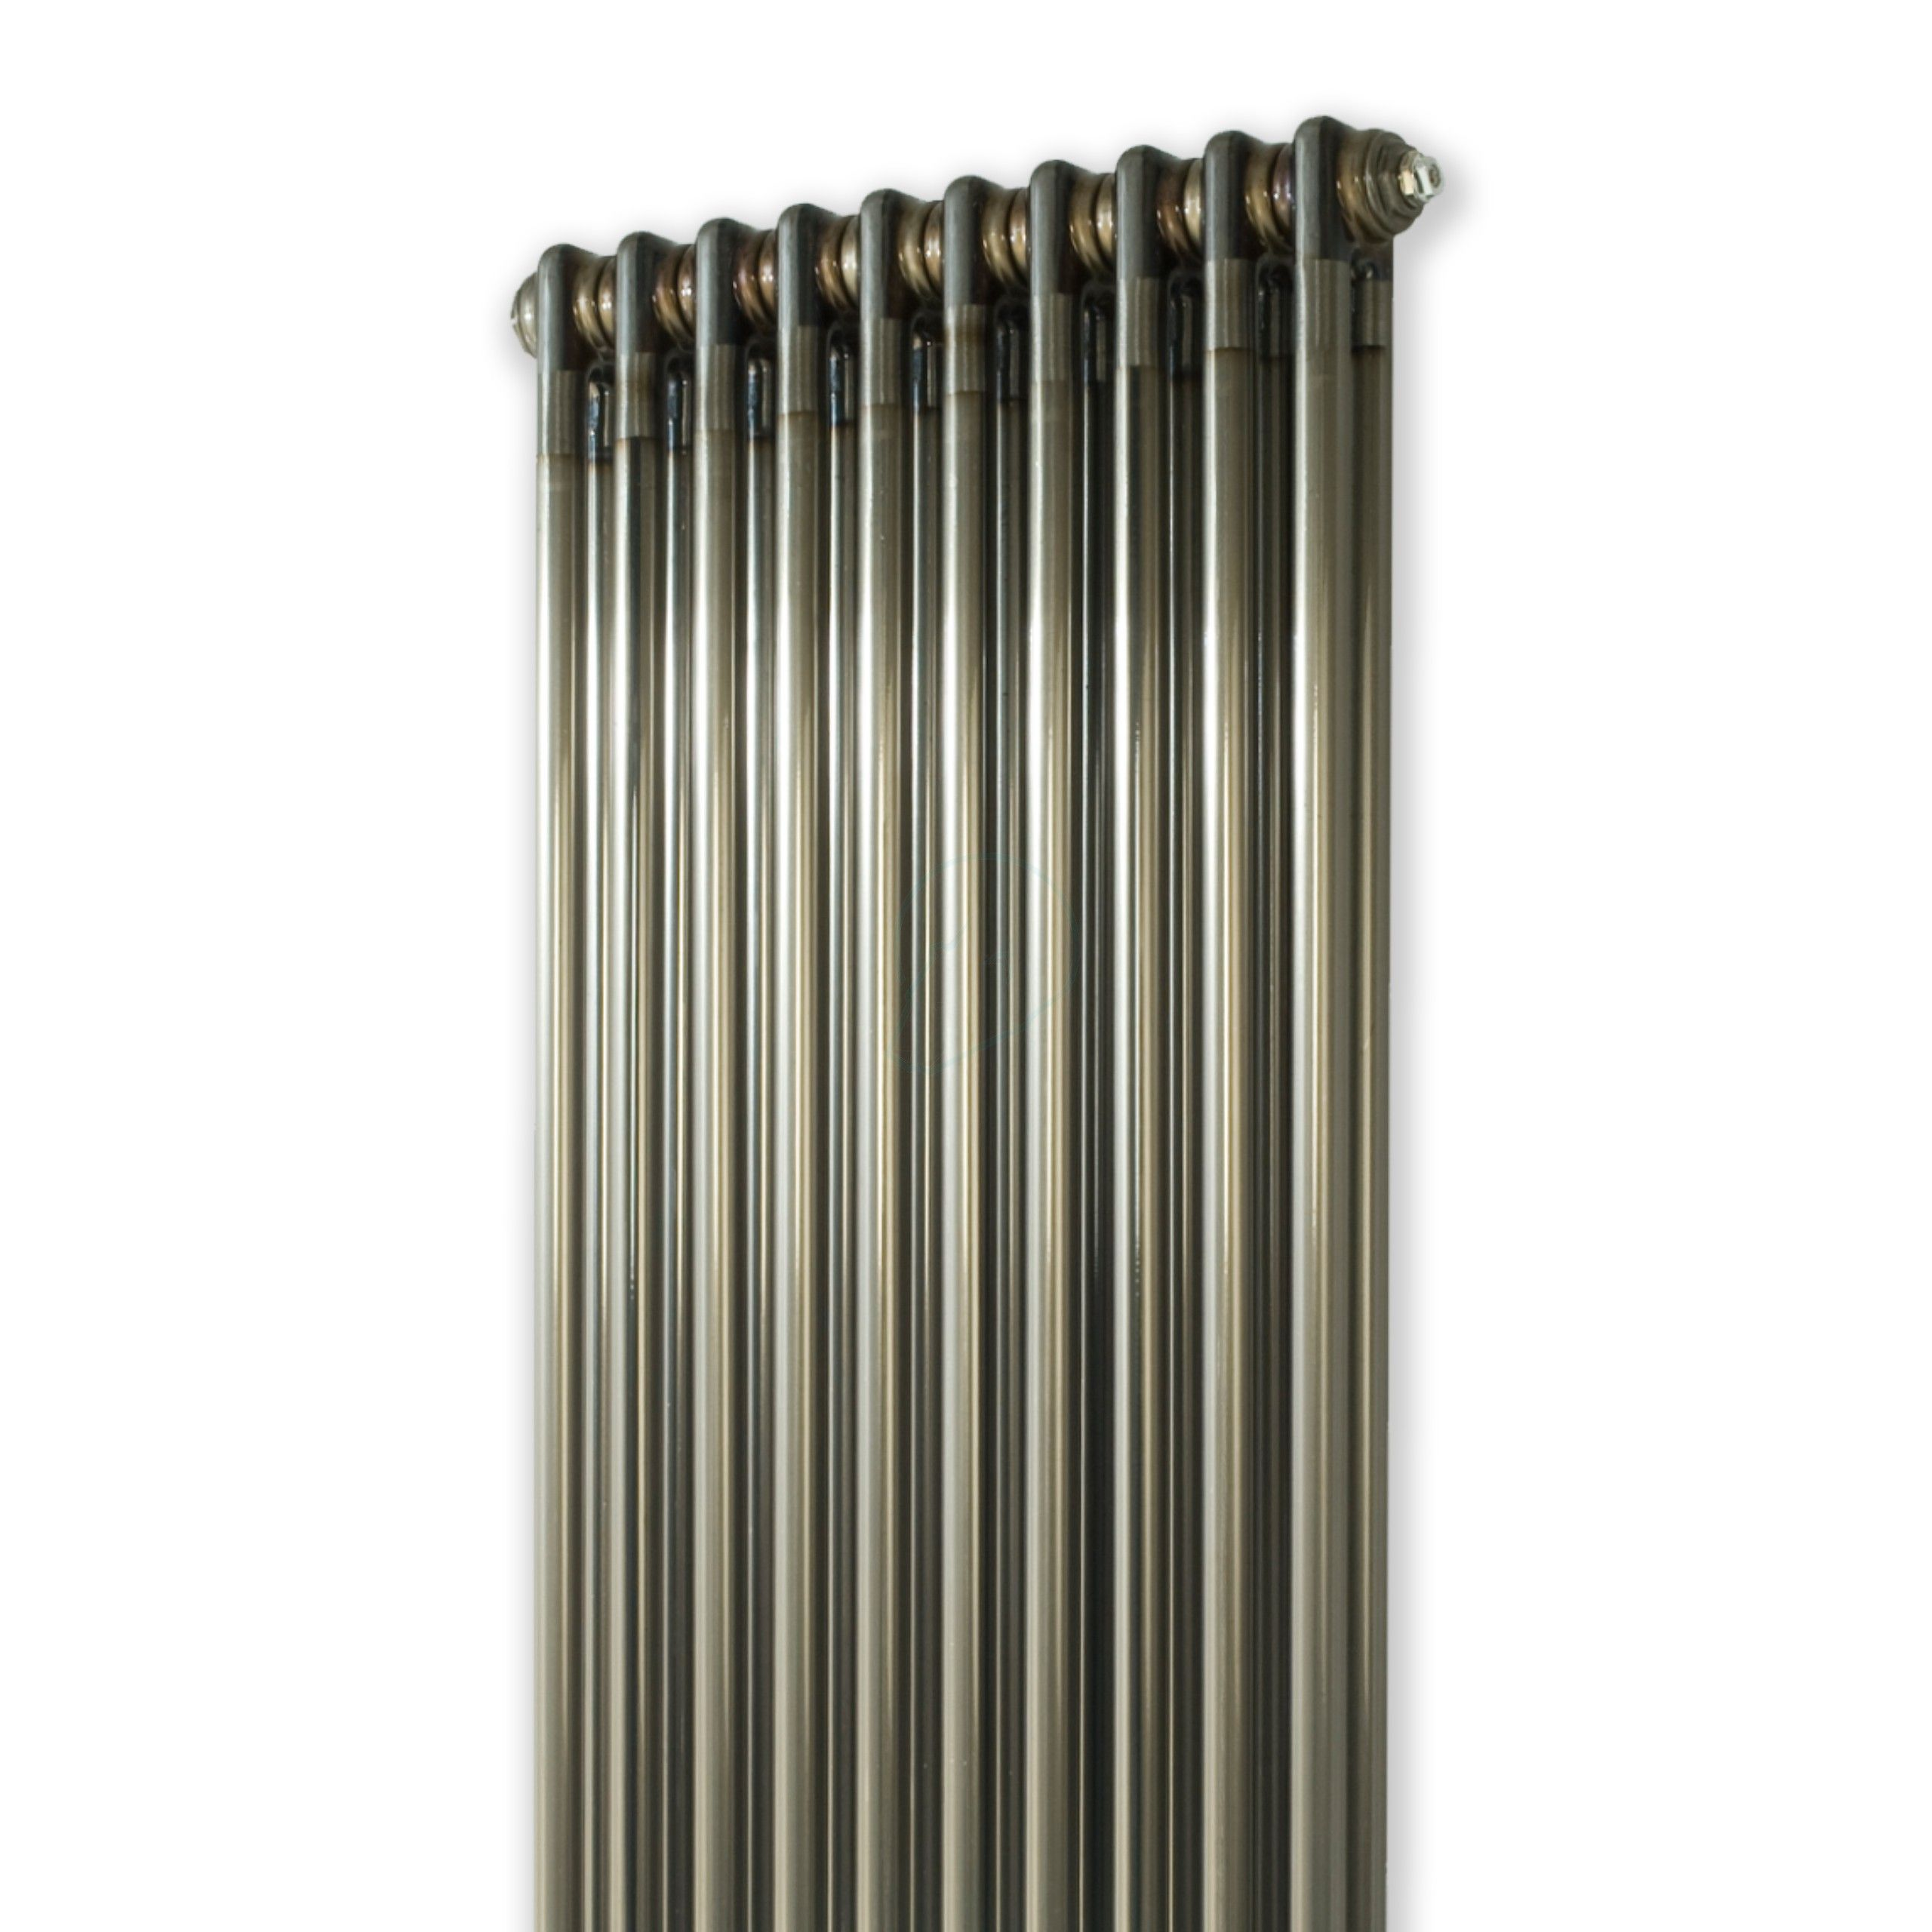 2000H x 490W 2 Column Vertical Raw Metal Lacquered Radiator